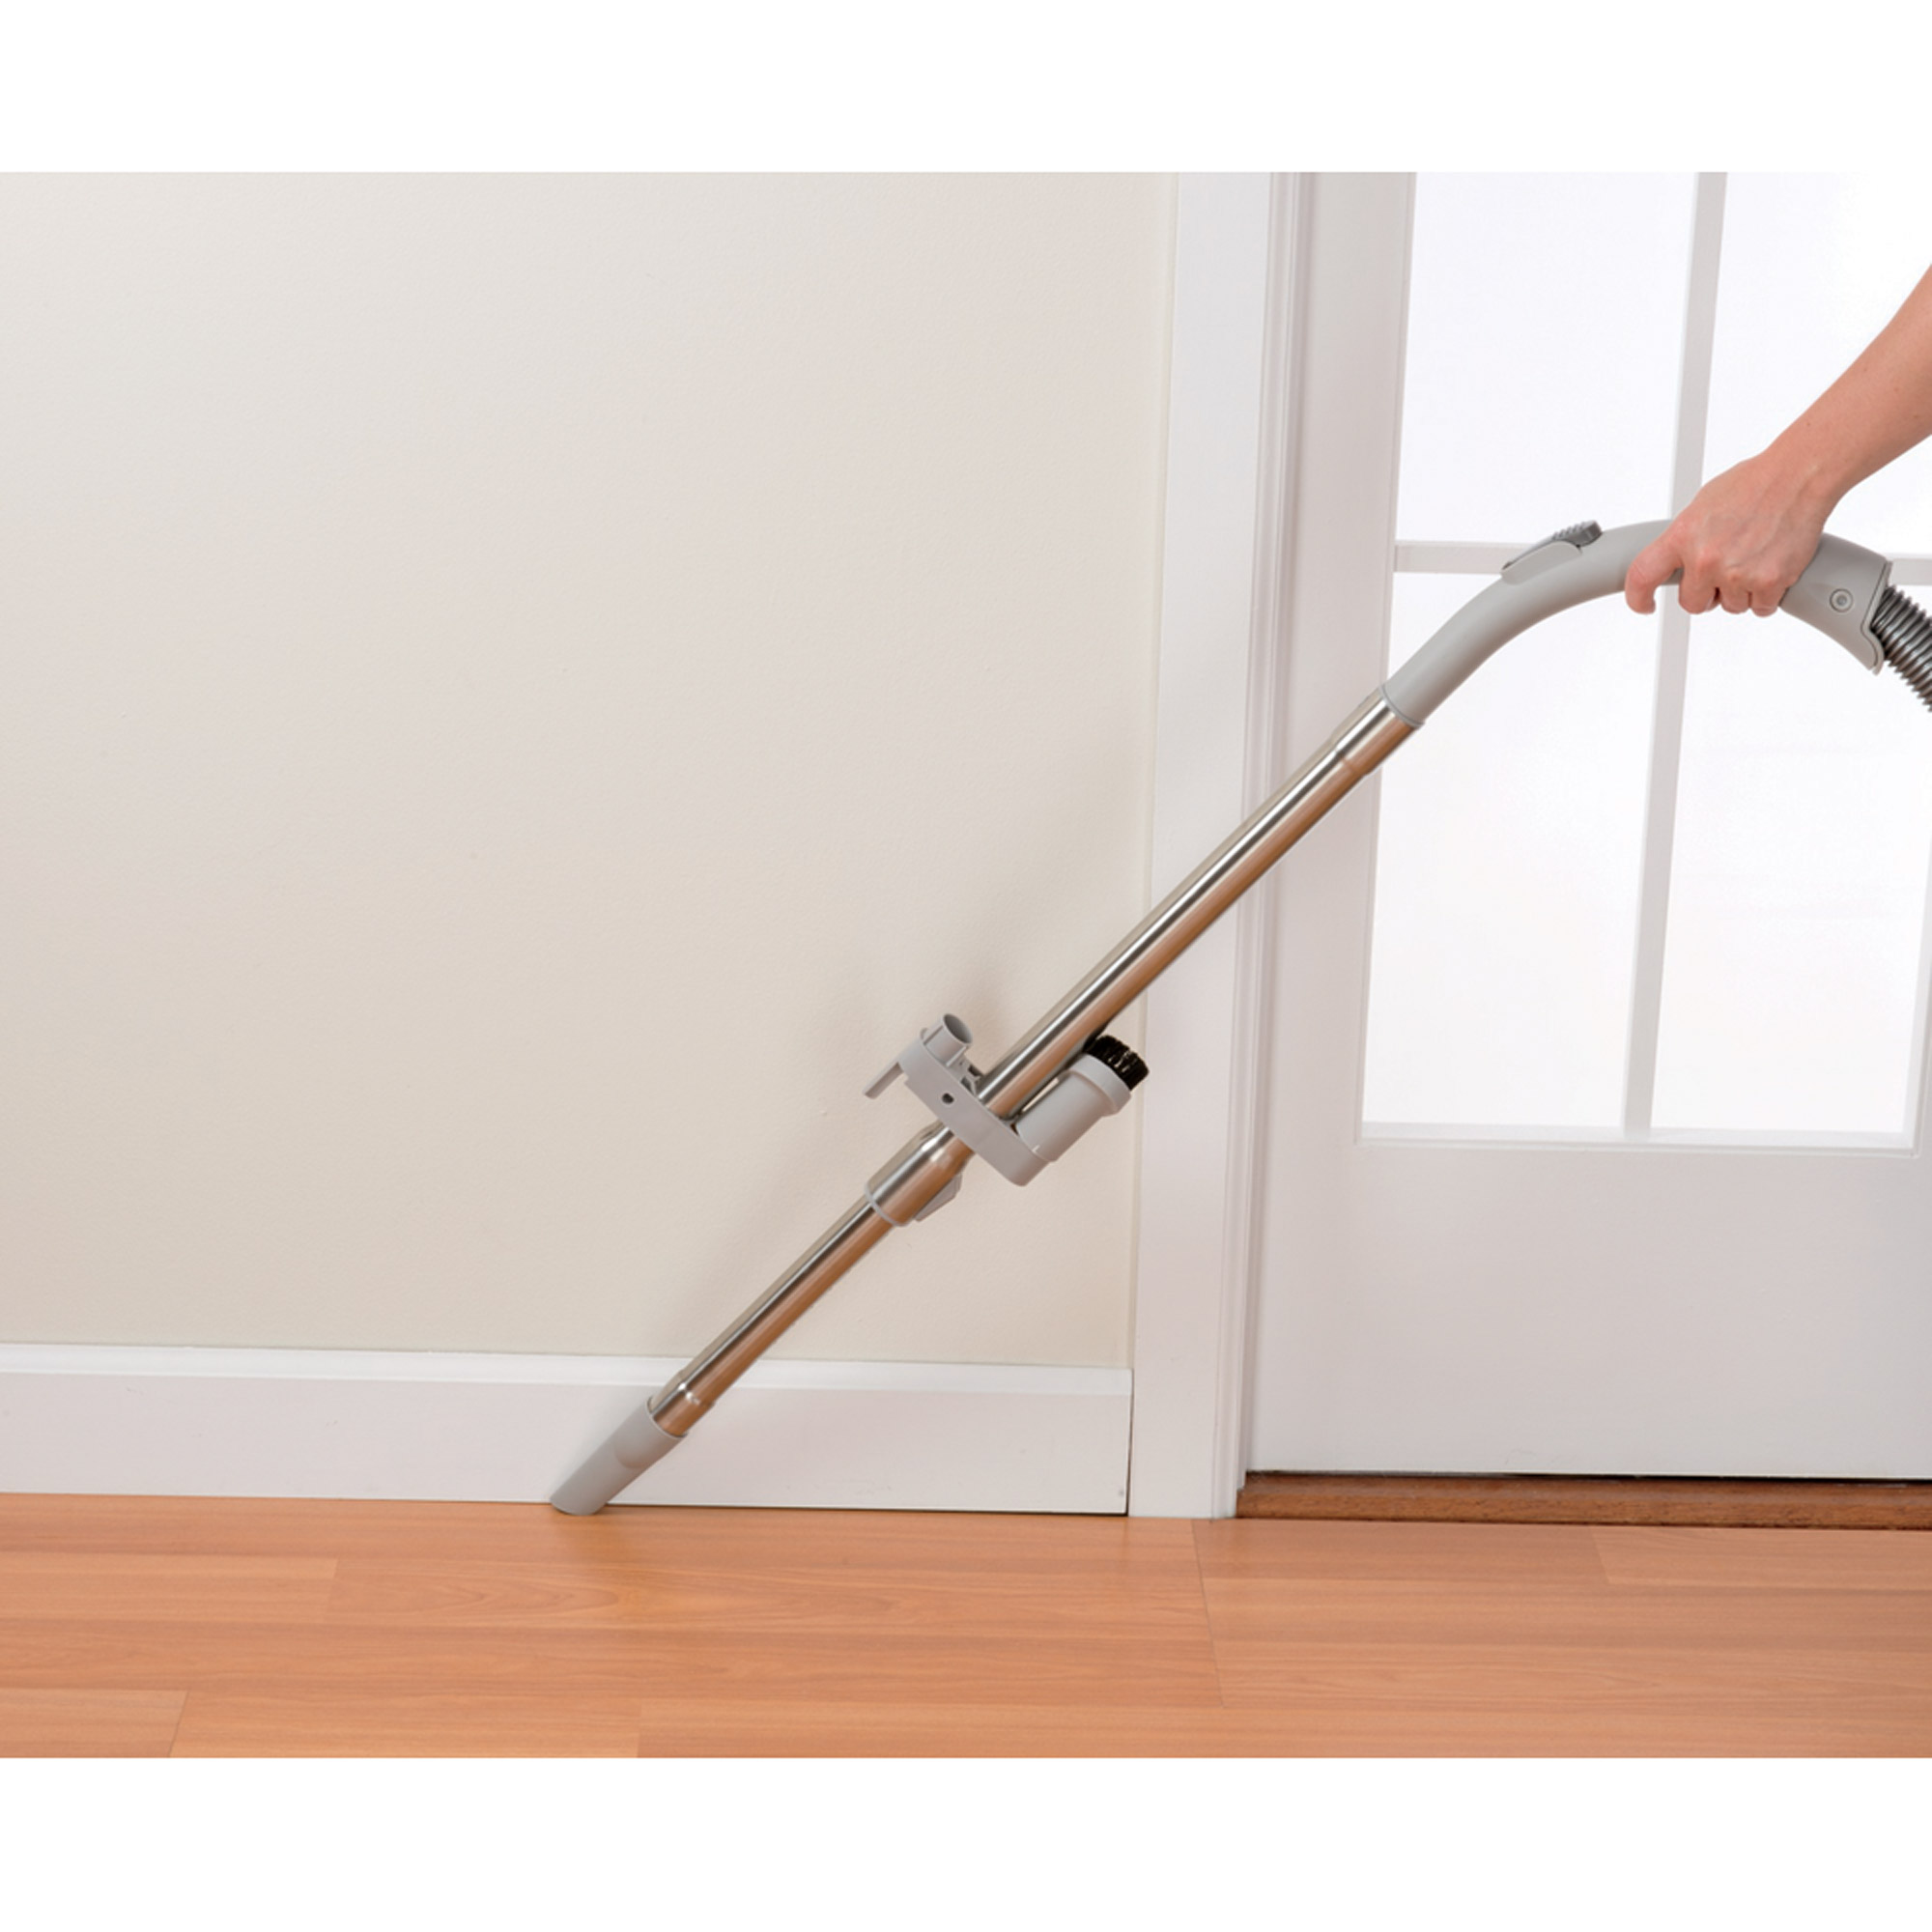 vacuum mop how stock floor clean tease to today hardwood floors home